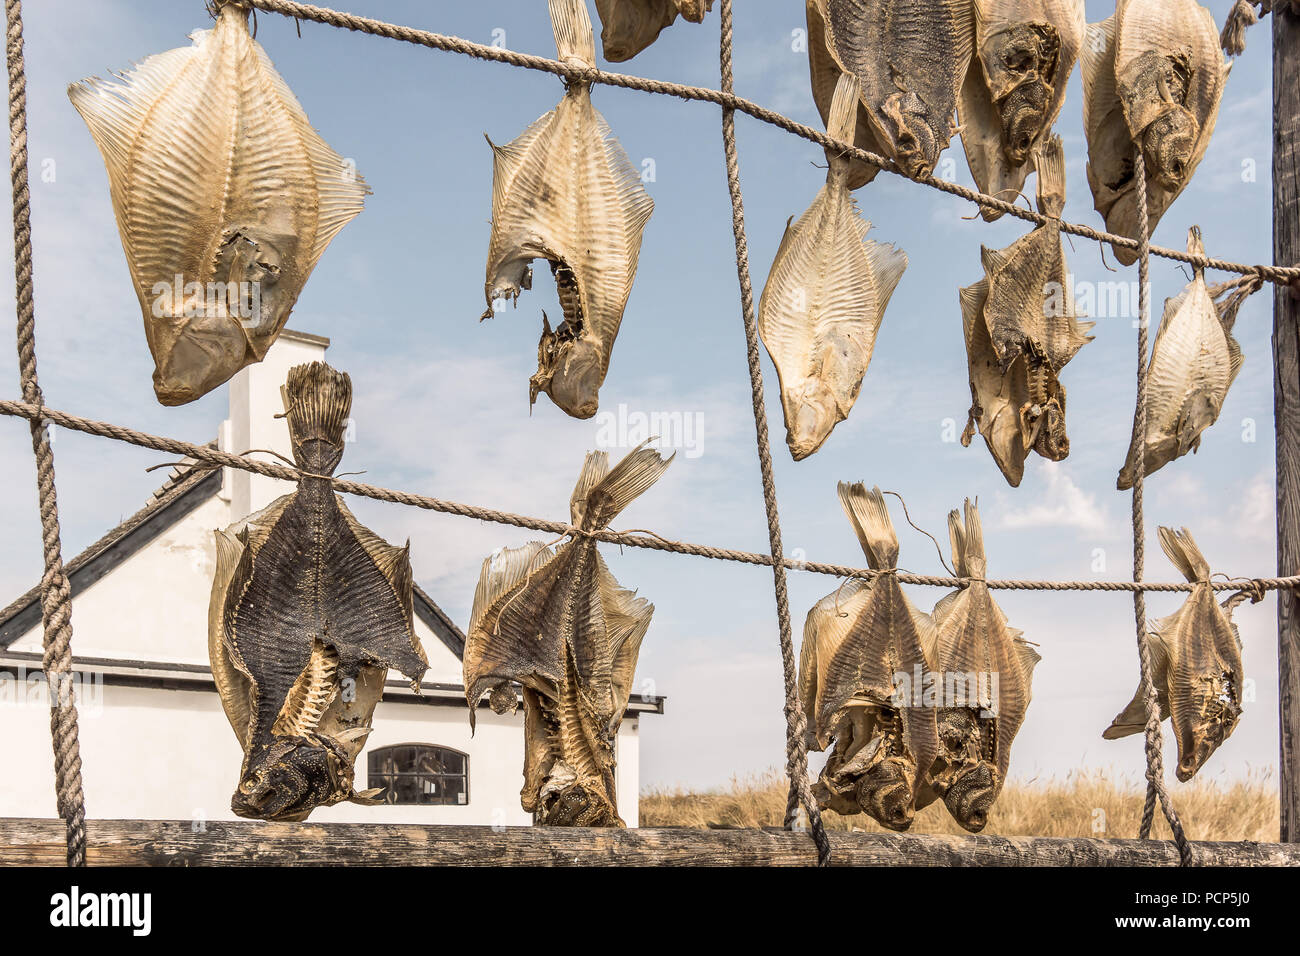 Flatfish is an exellent seafood, hanging on ropes for drying in front of an old fishermen´s cottage, Liseleje, Denmark, Juli 30, 2018 - Stock Image